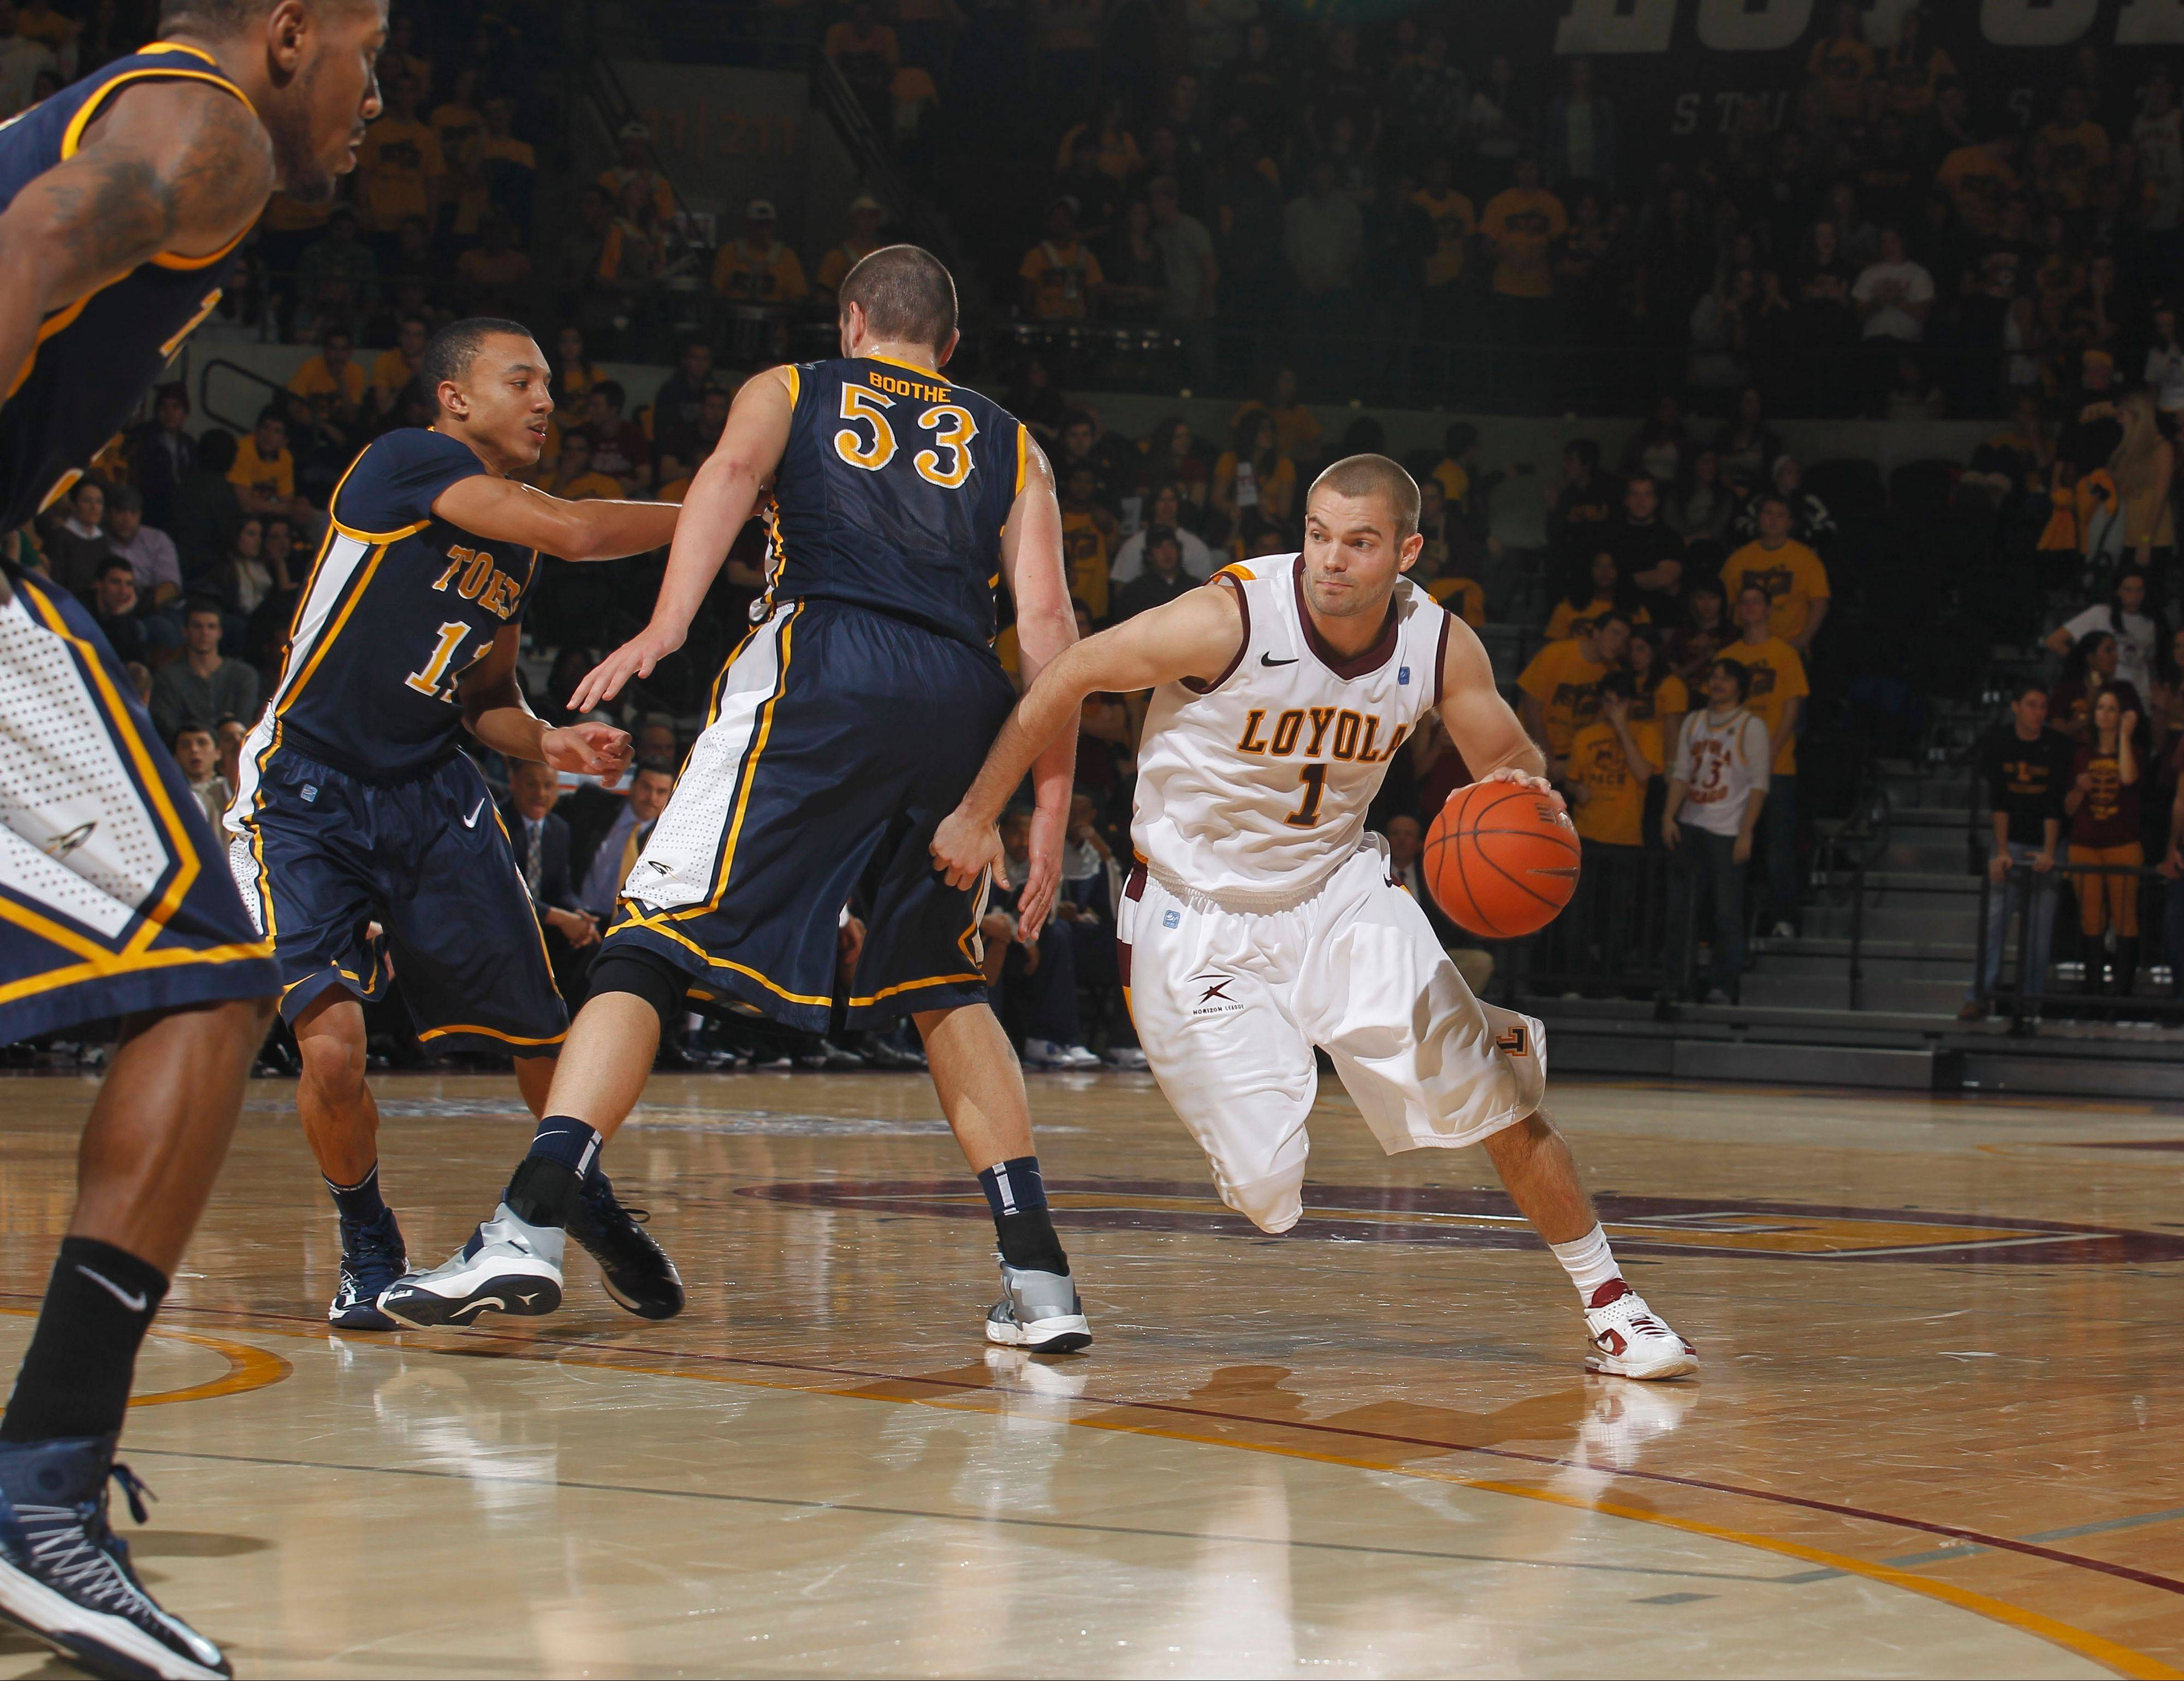 Loyola's Cully Payne goes to the dribble-drive in a recent game against Toledo.